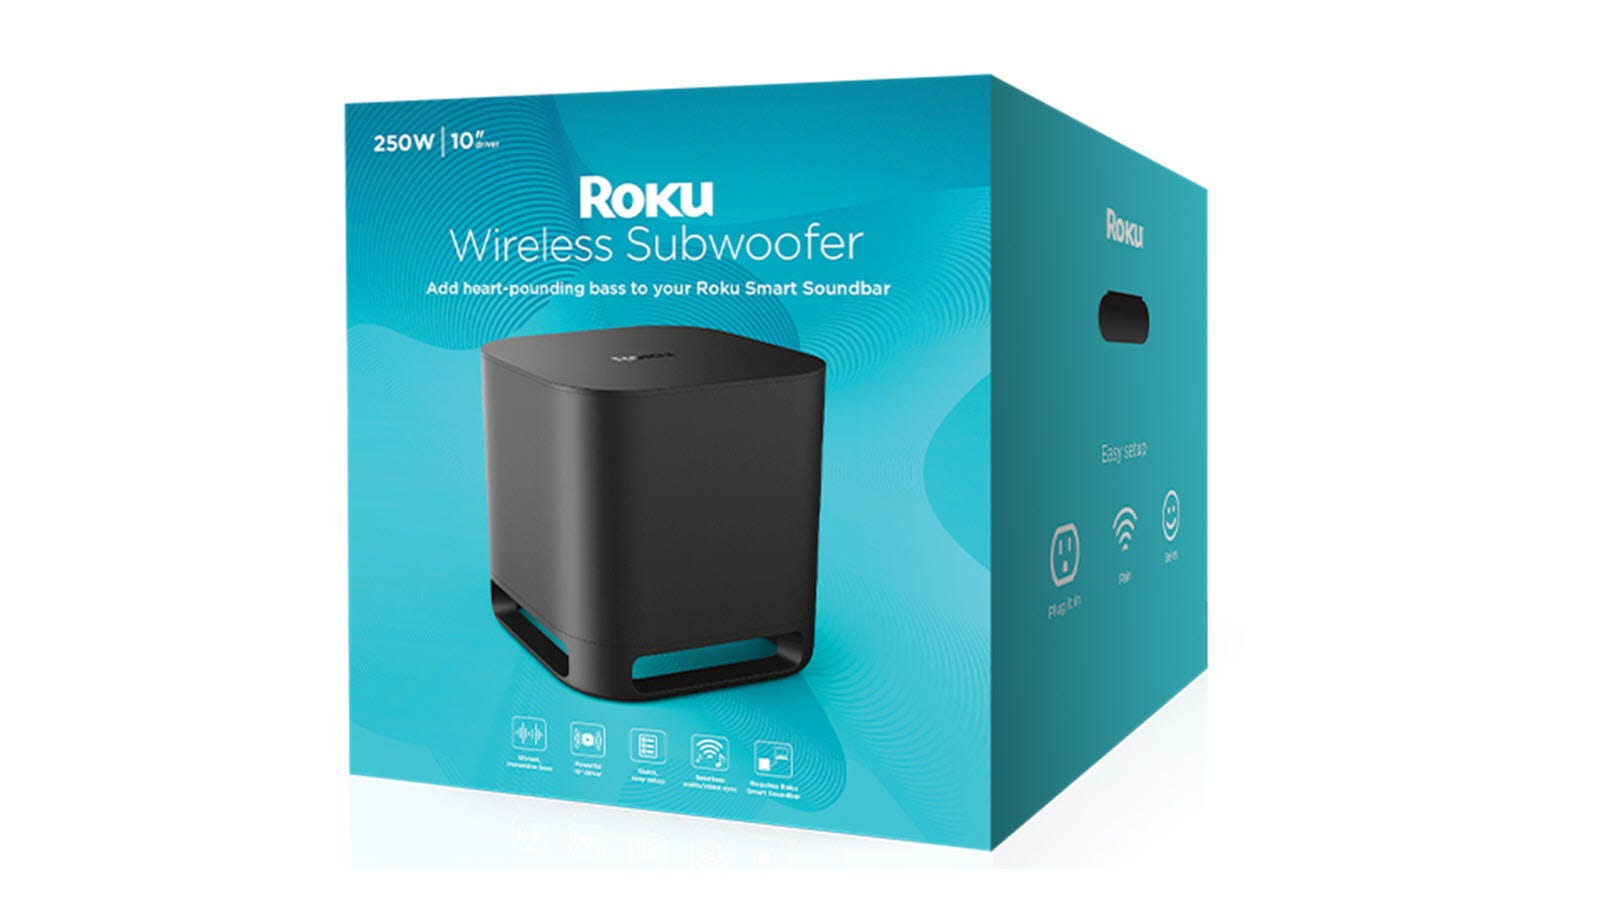 The Roku Wireless Subwoofer box.